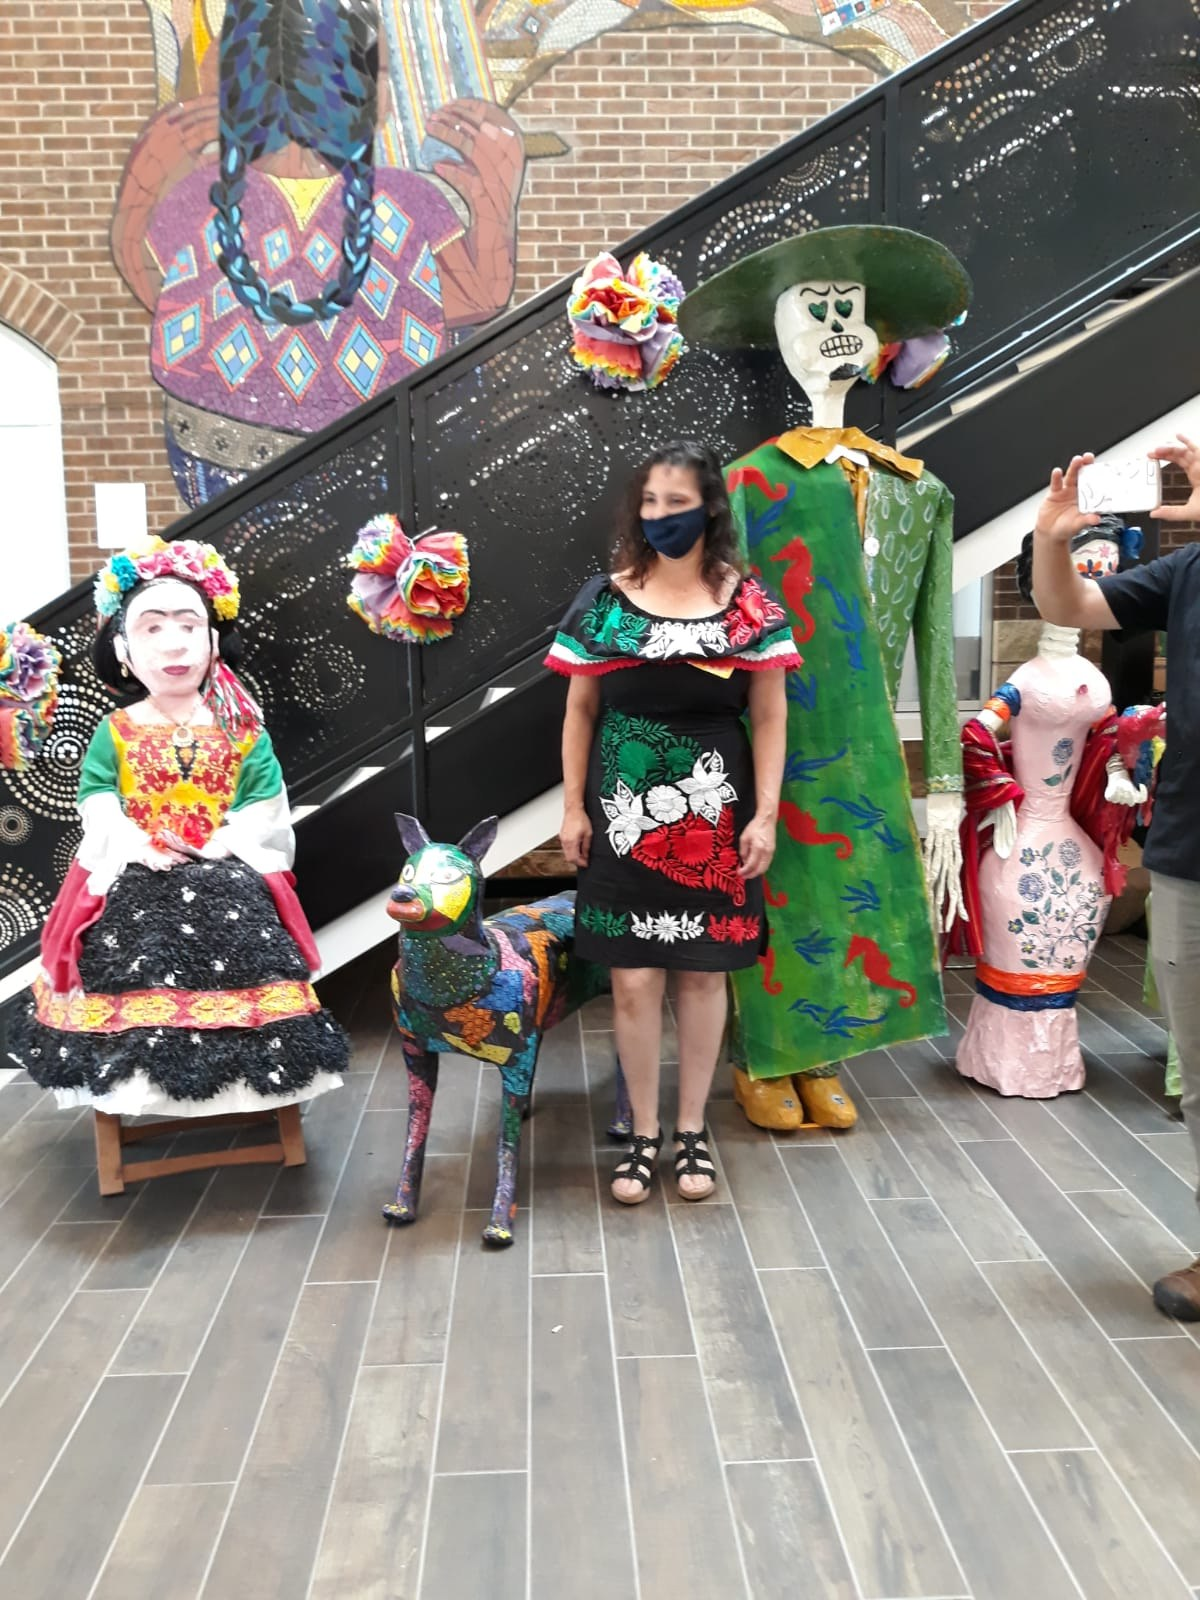 A woman standing next to several calavera puppets.